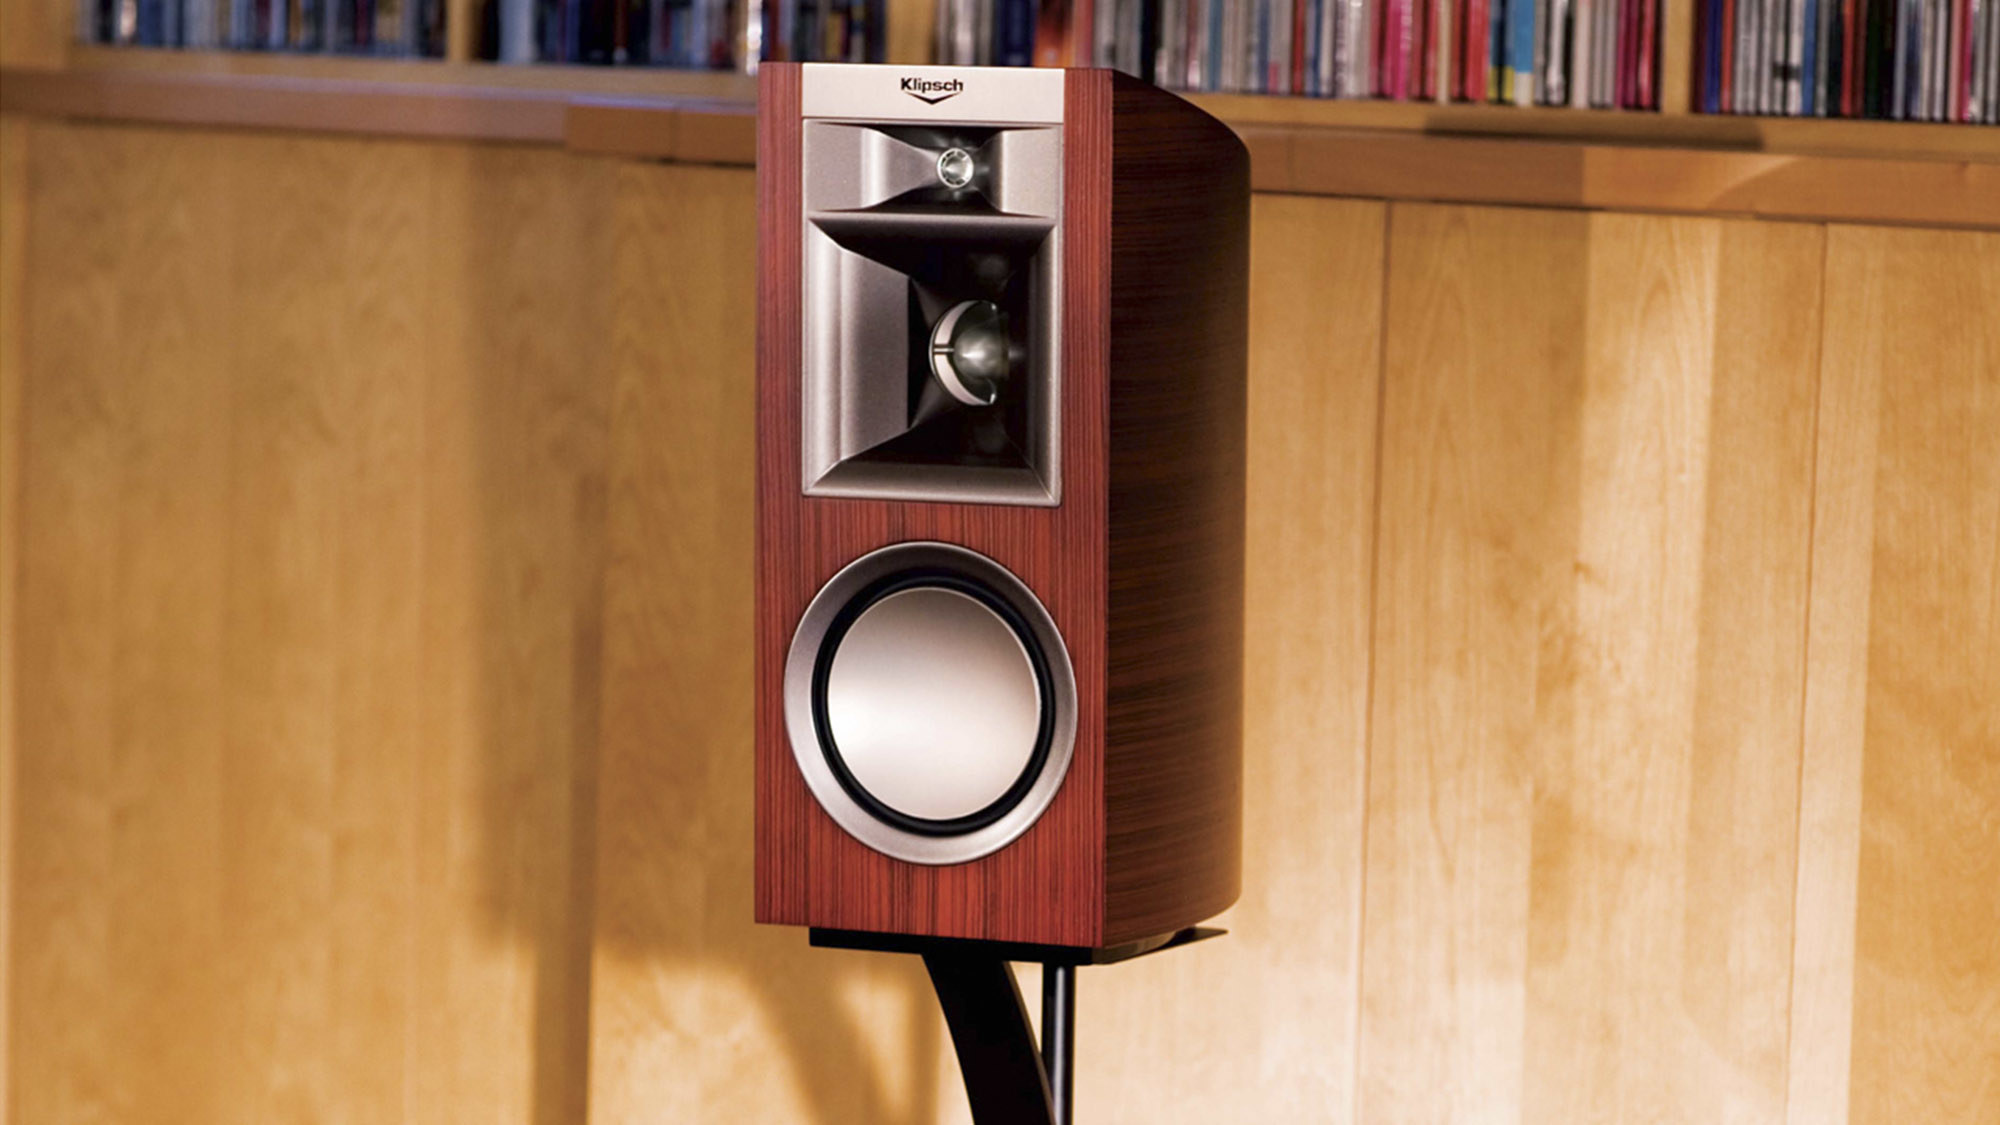 klipsch bookshelf speakers products reference white series